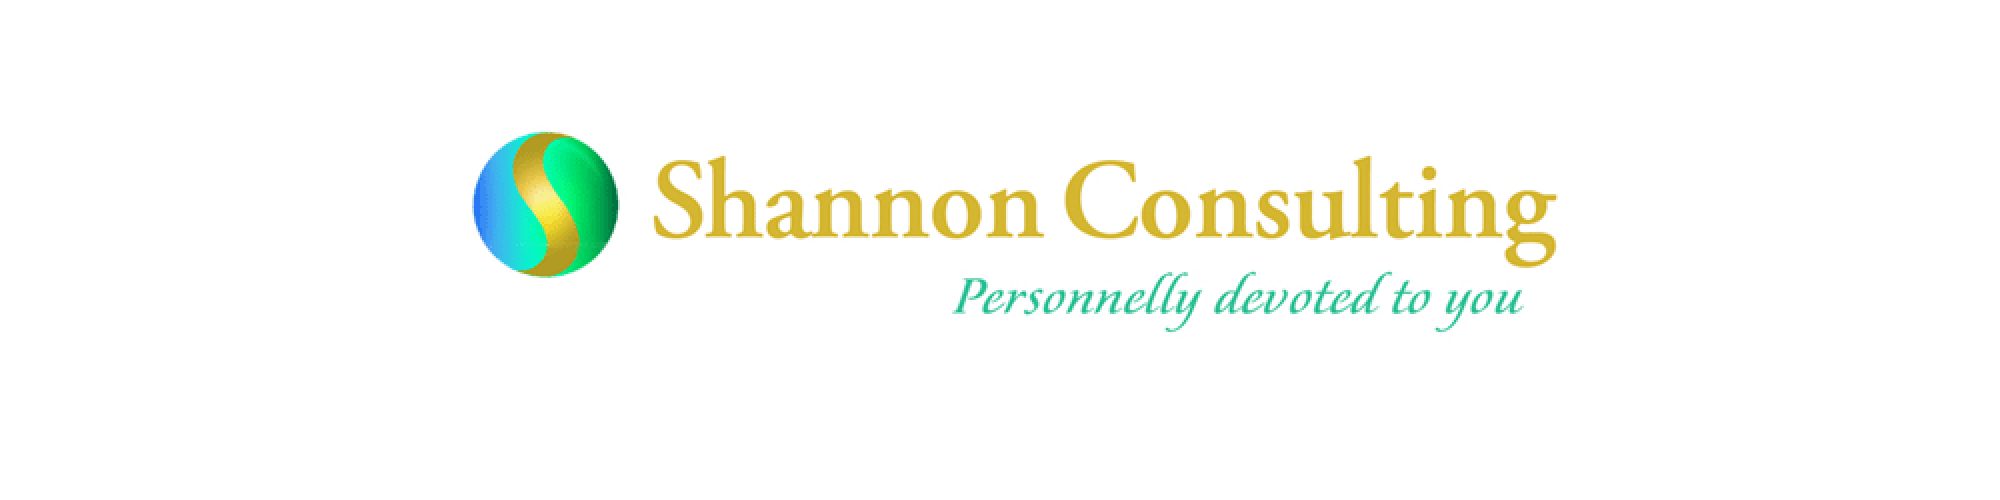 Shannon Consulting Kft.